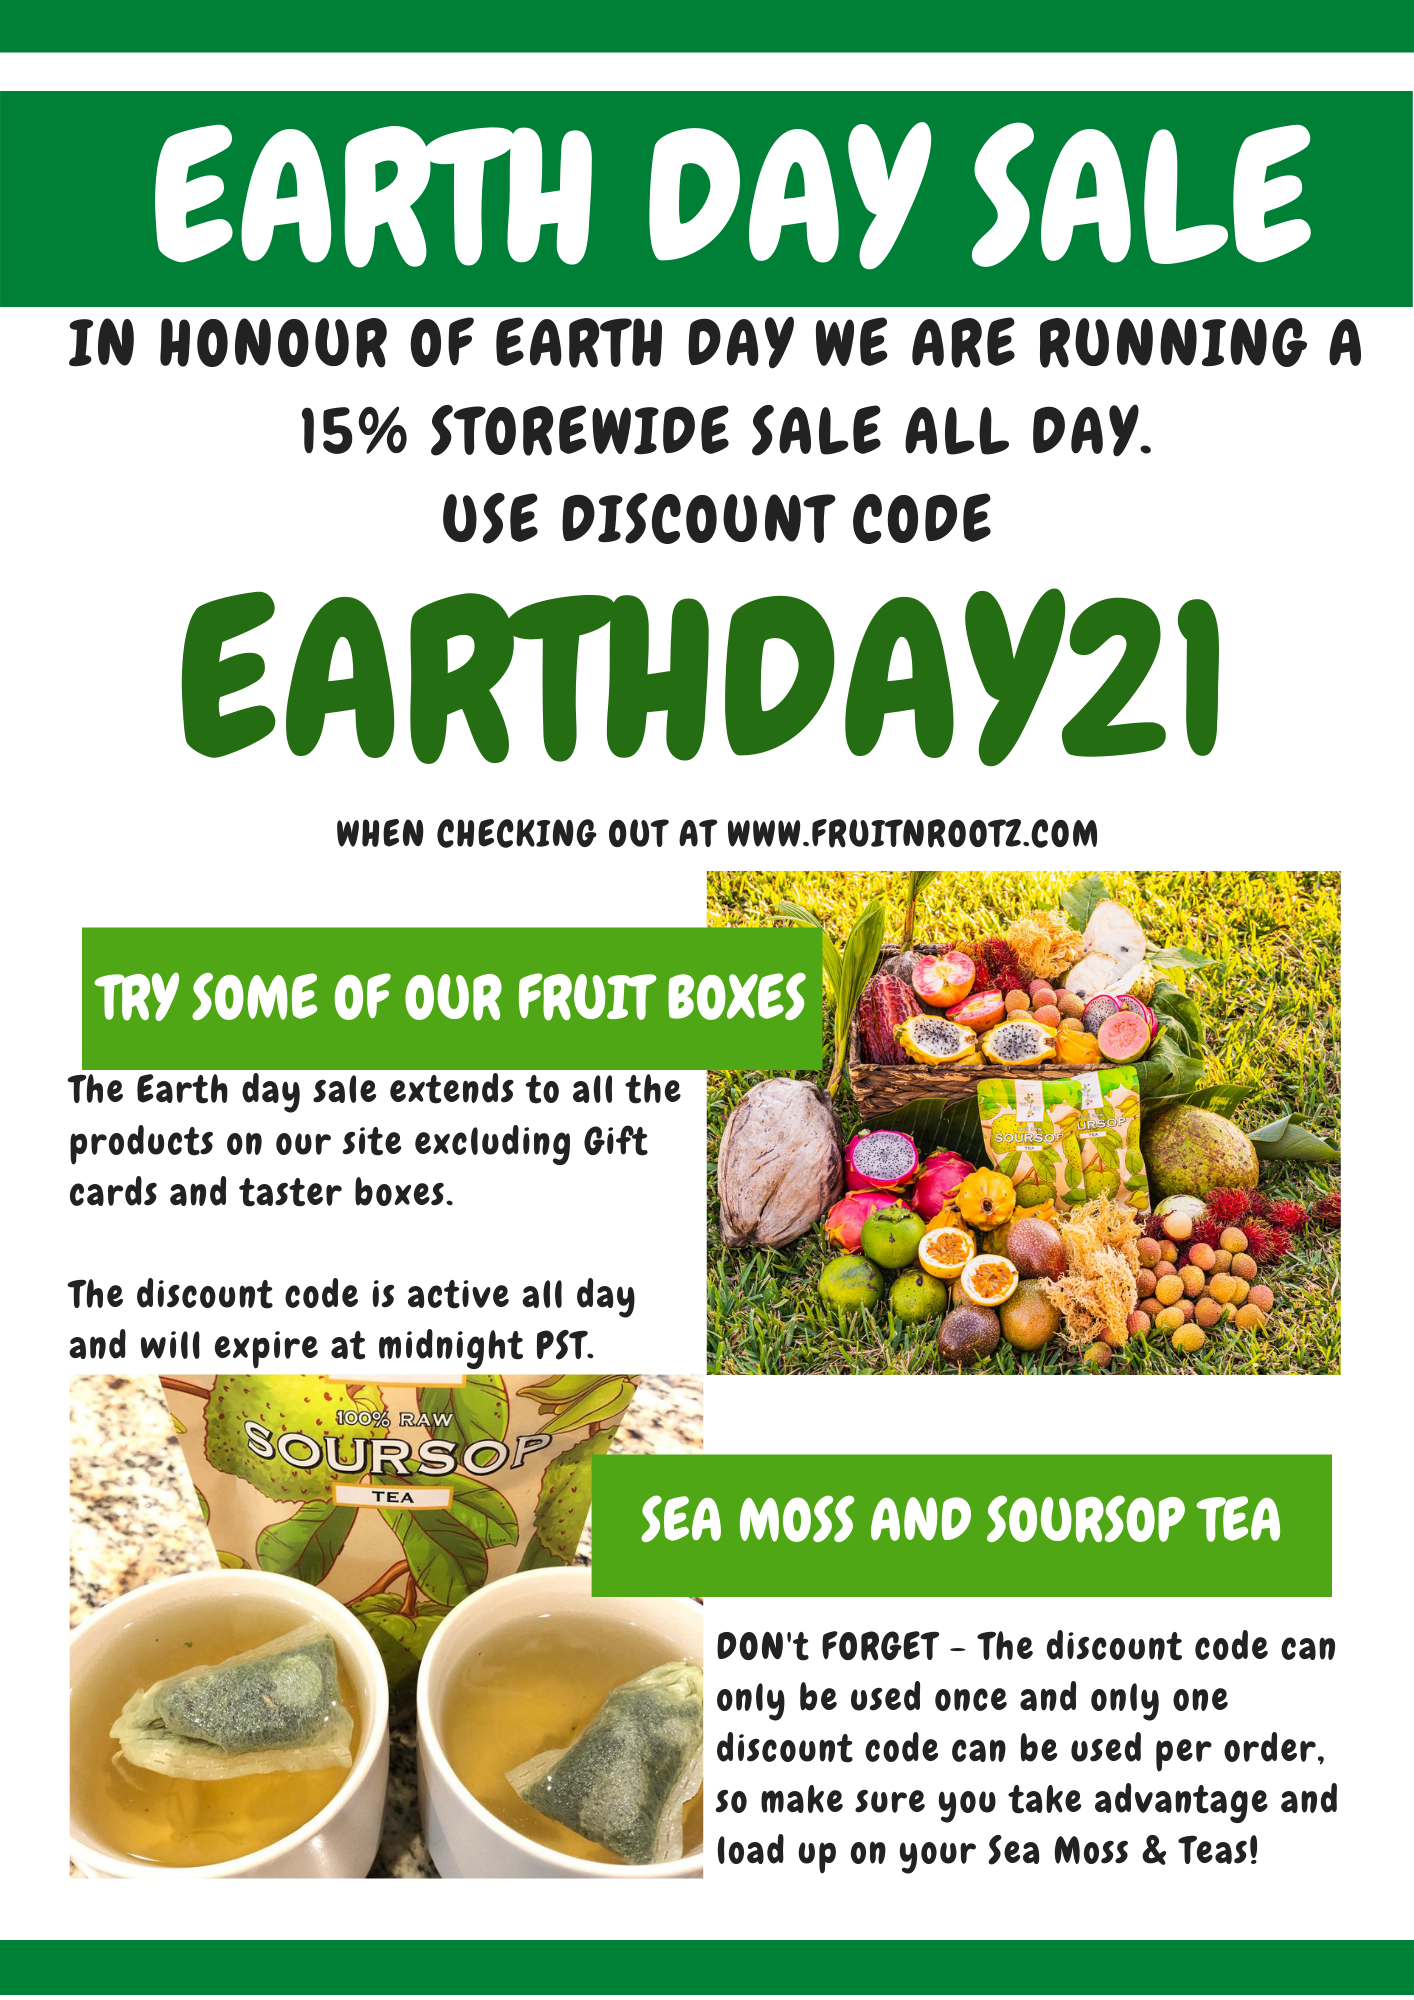 Fruits N Rootz Earth Day 2021 Store Wide Flash Sale